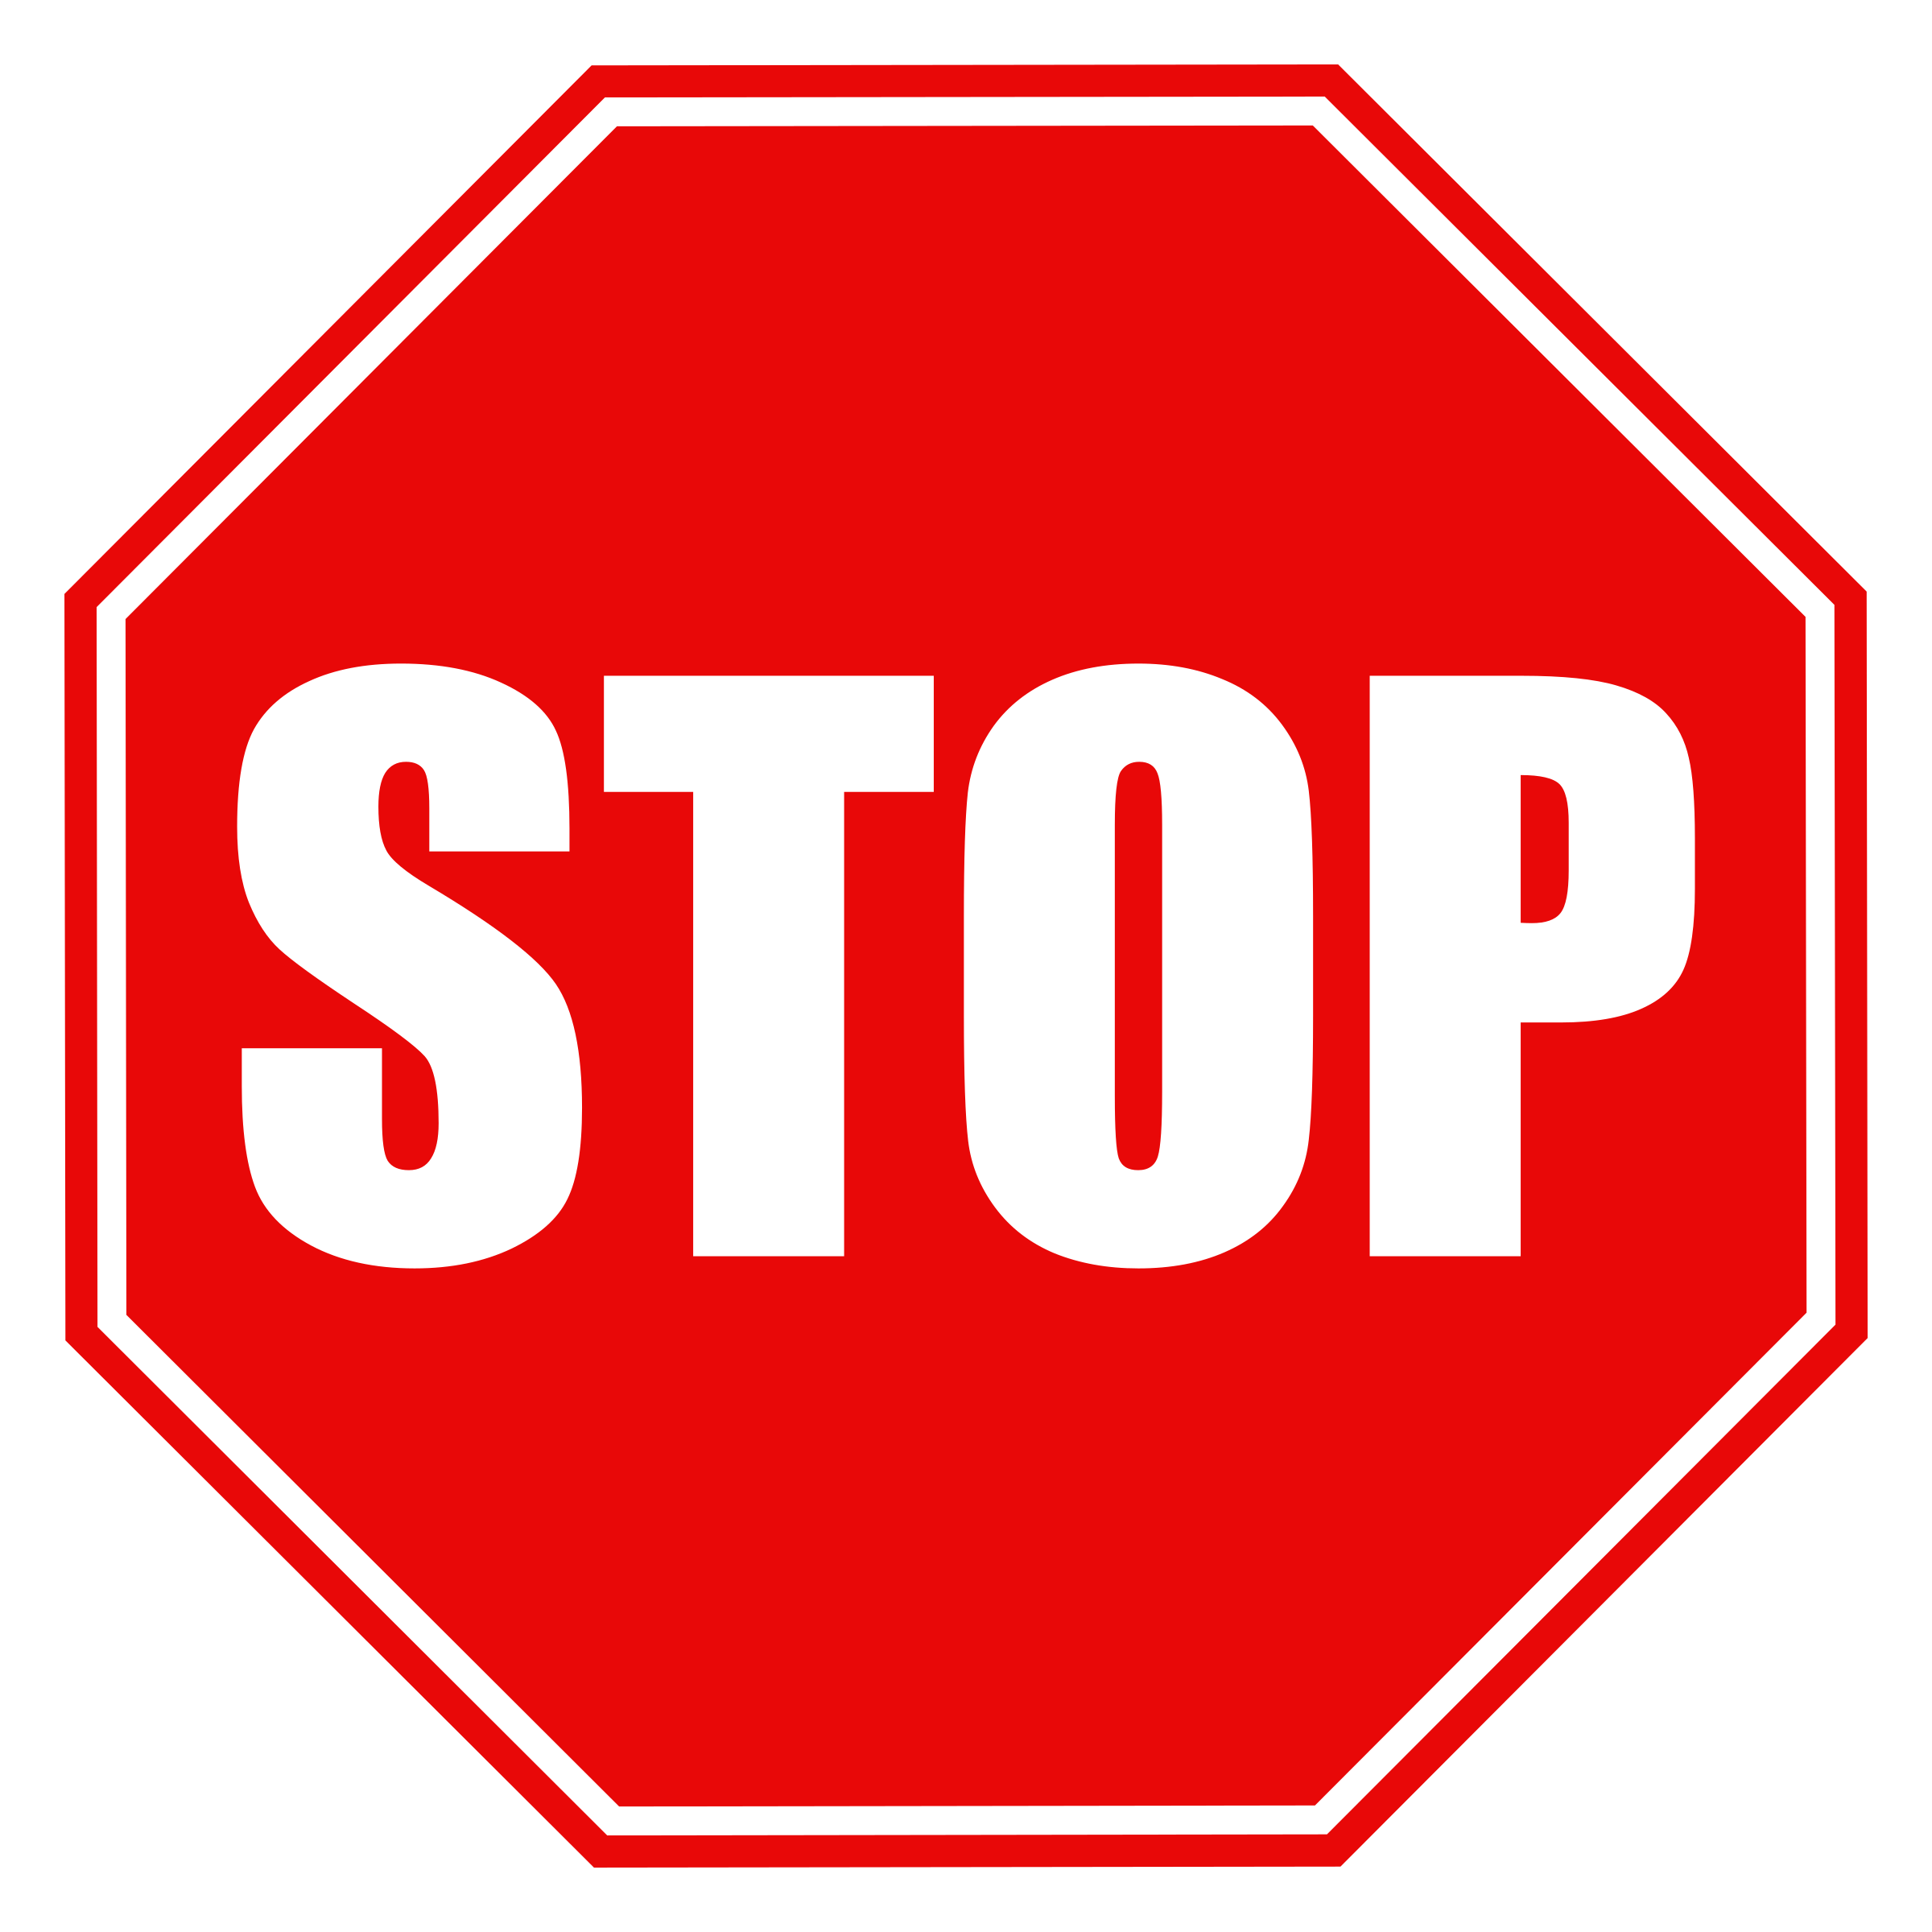 Stop PNG HD